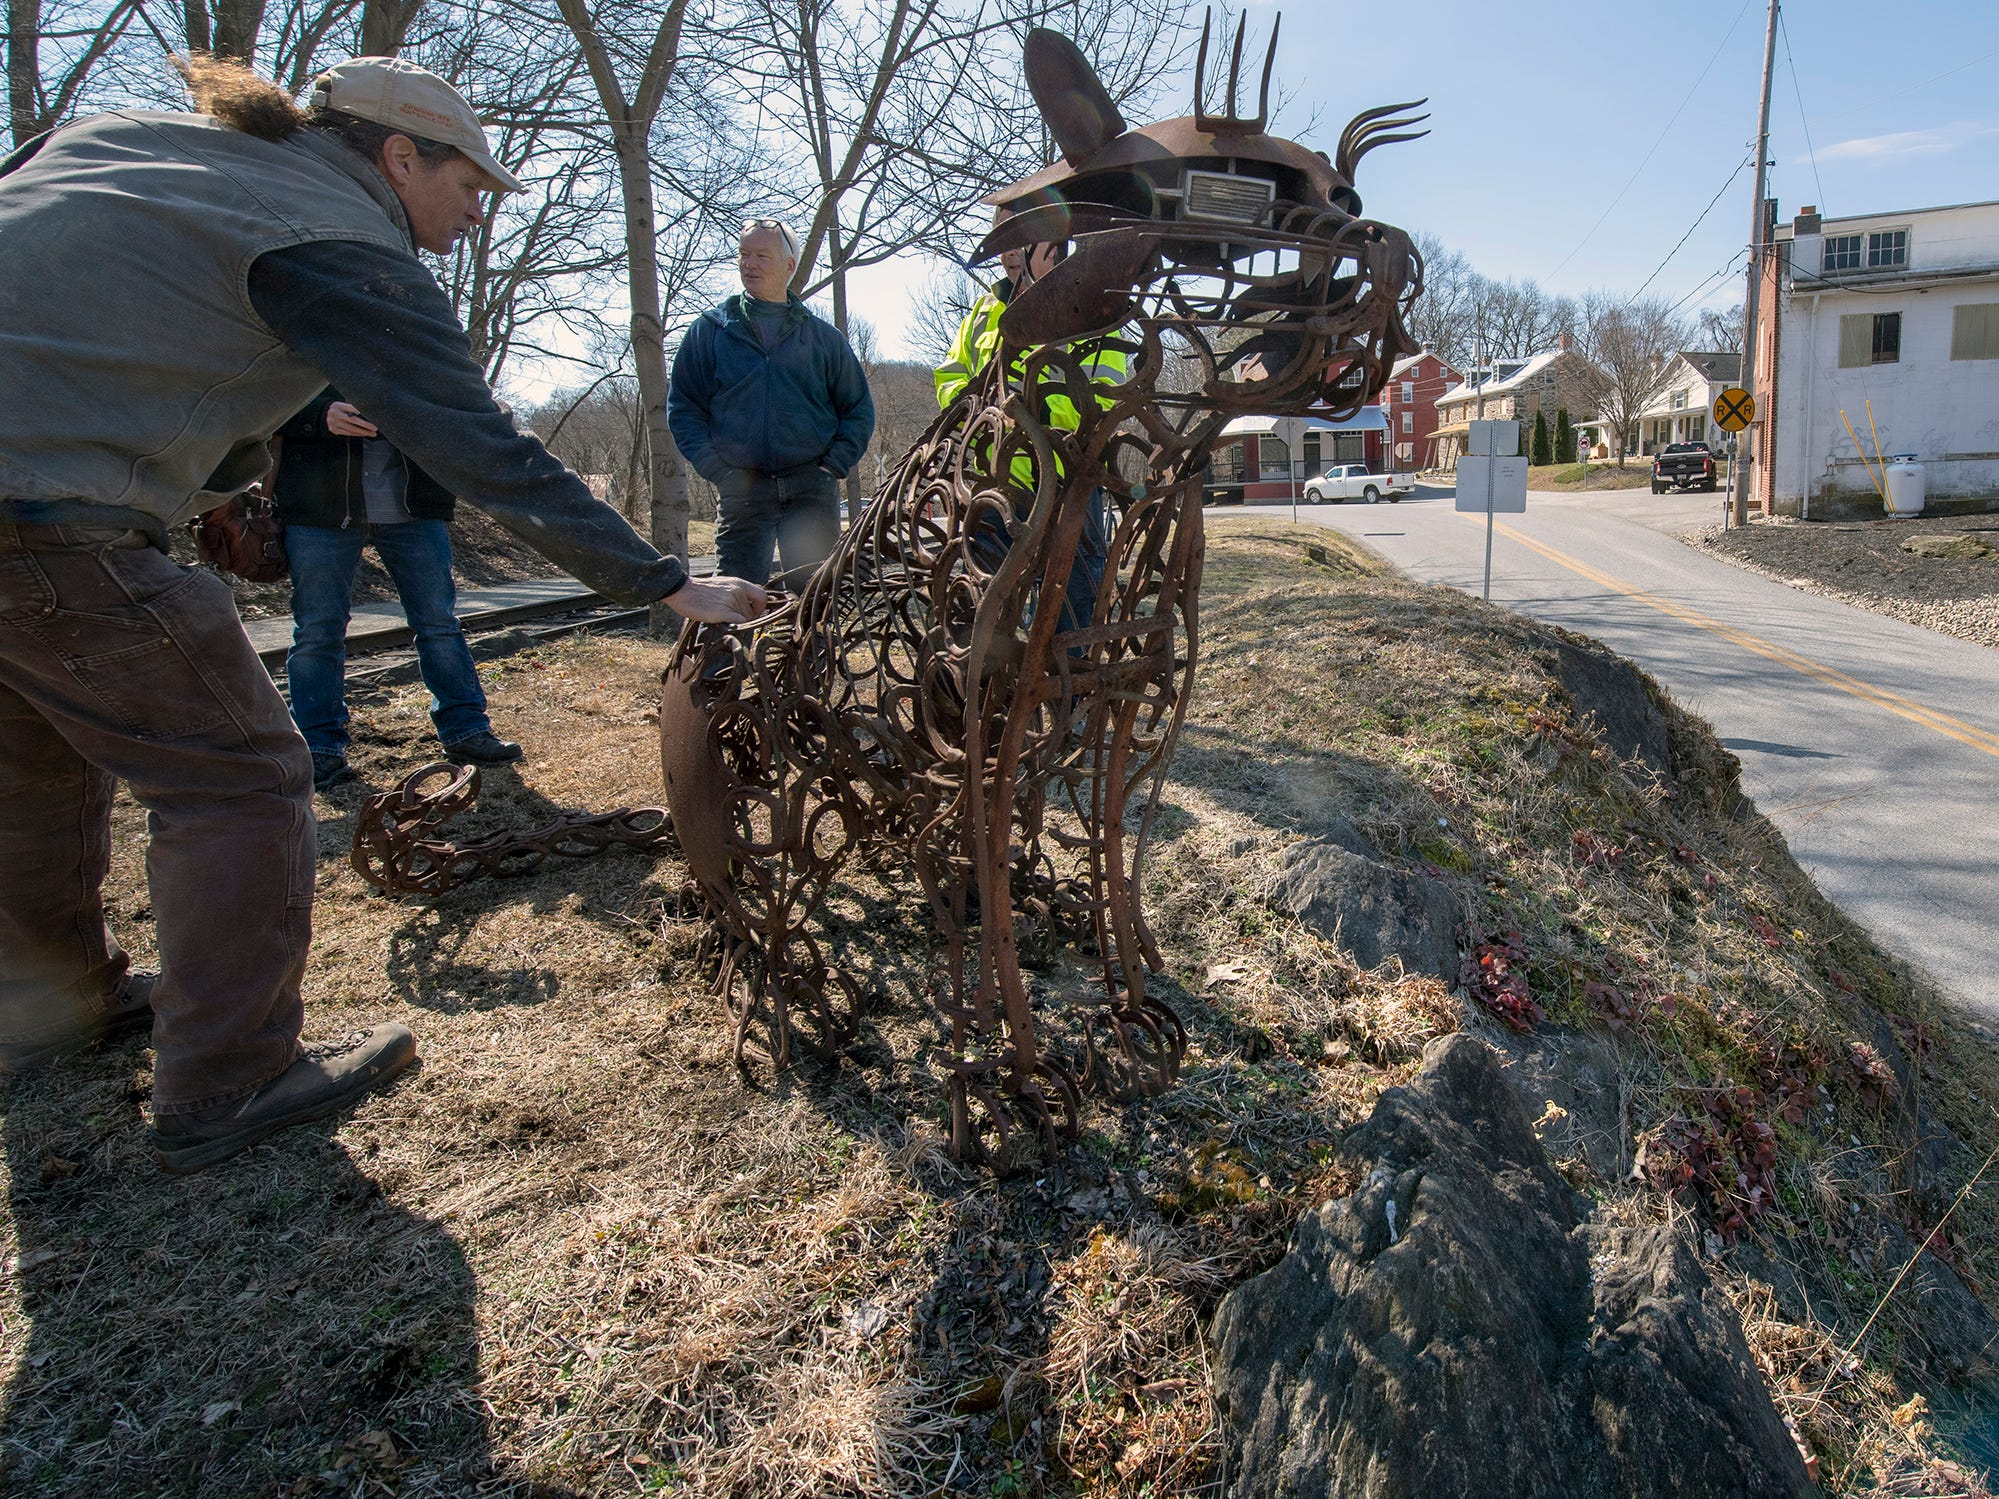 David Keller, left, is with a large cat sculpture that was installed in Seitzland overlooking the road approaching from Glen Rock.